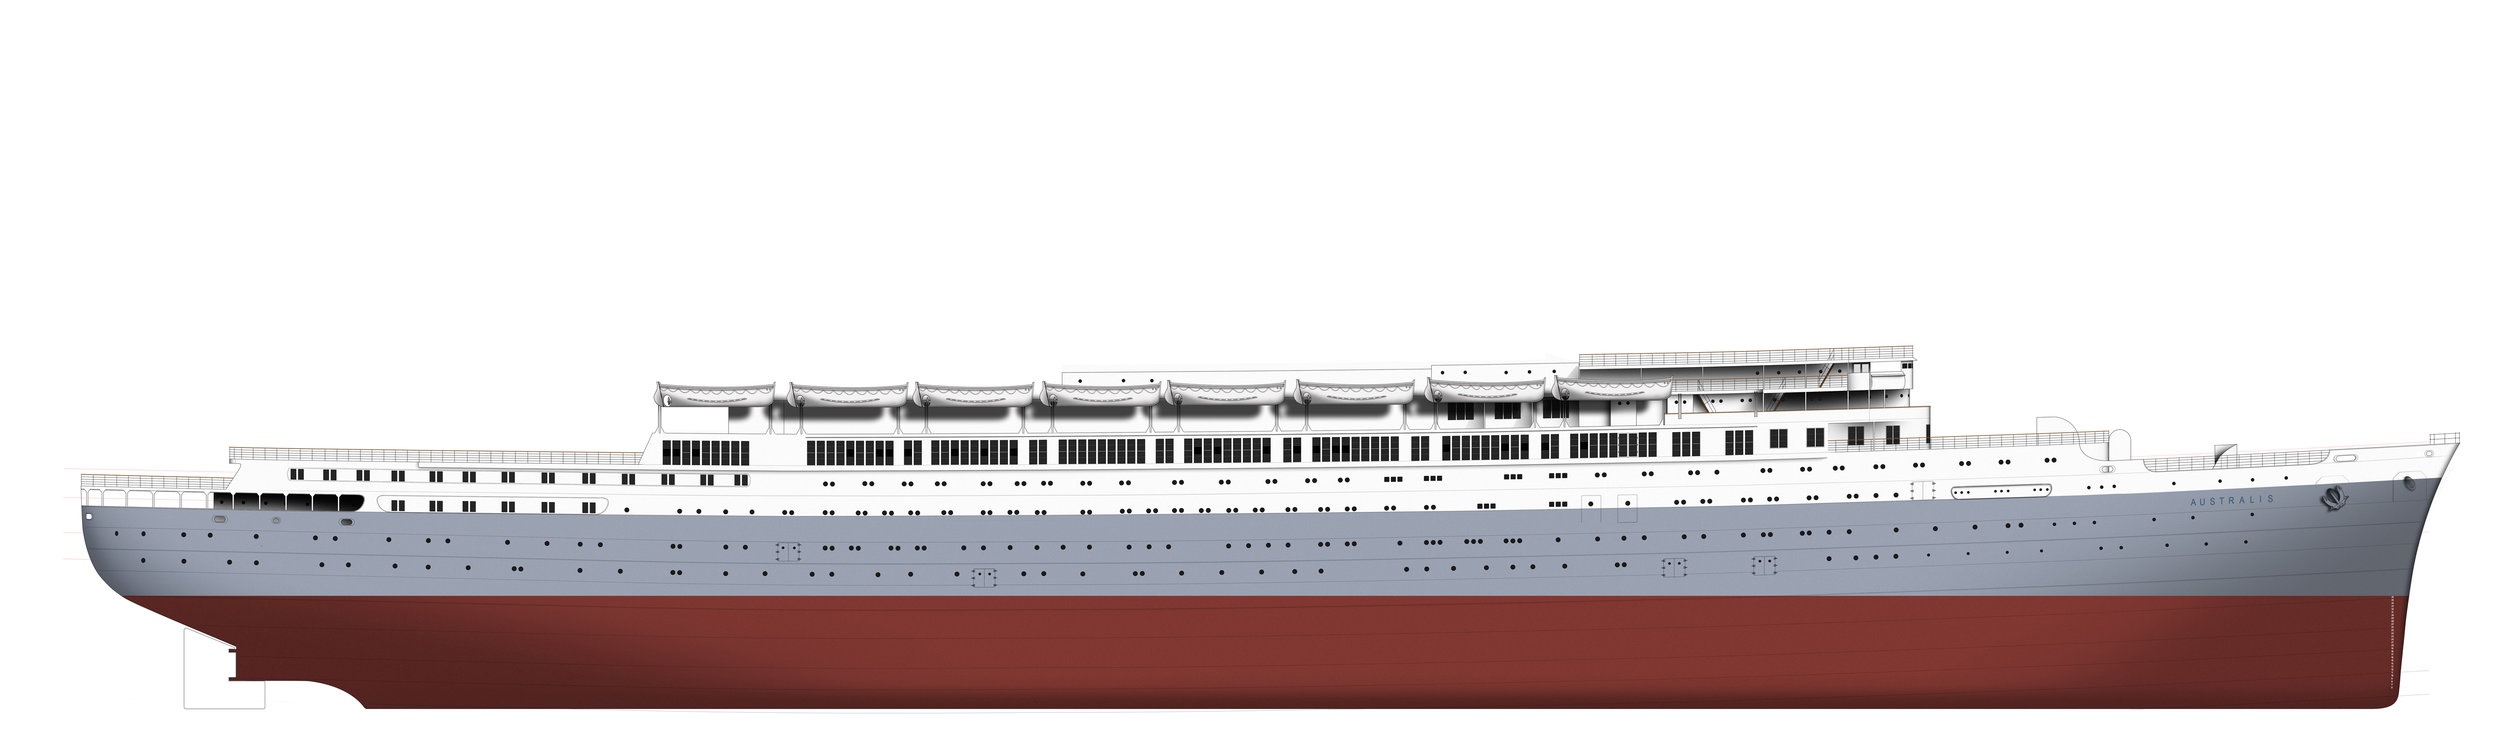 Some days later and the hull is complete - now the complex deck structures and passenger accommodation can be 'built' on top.